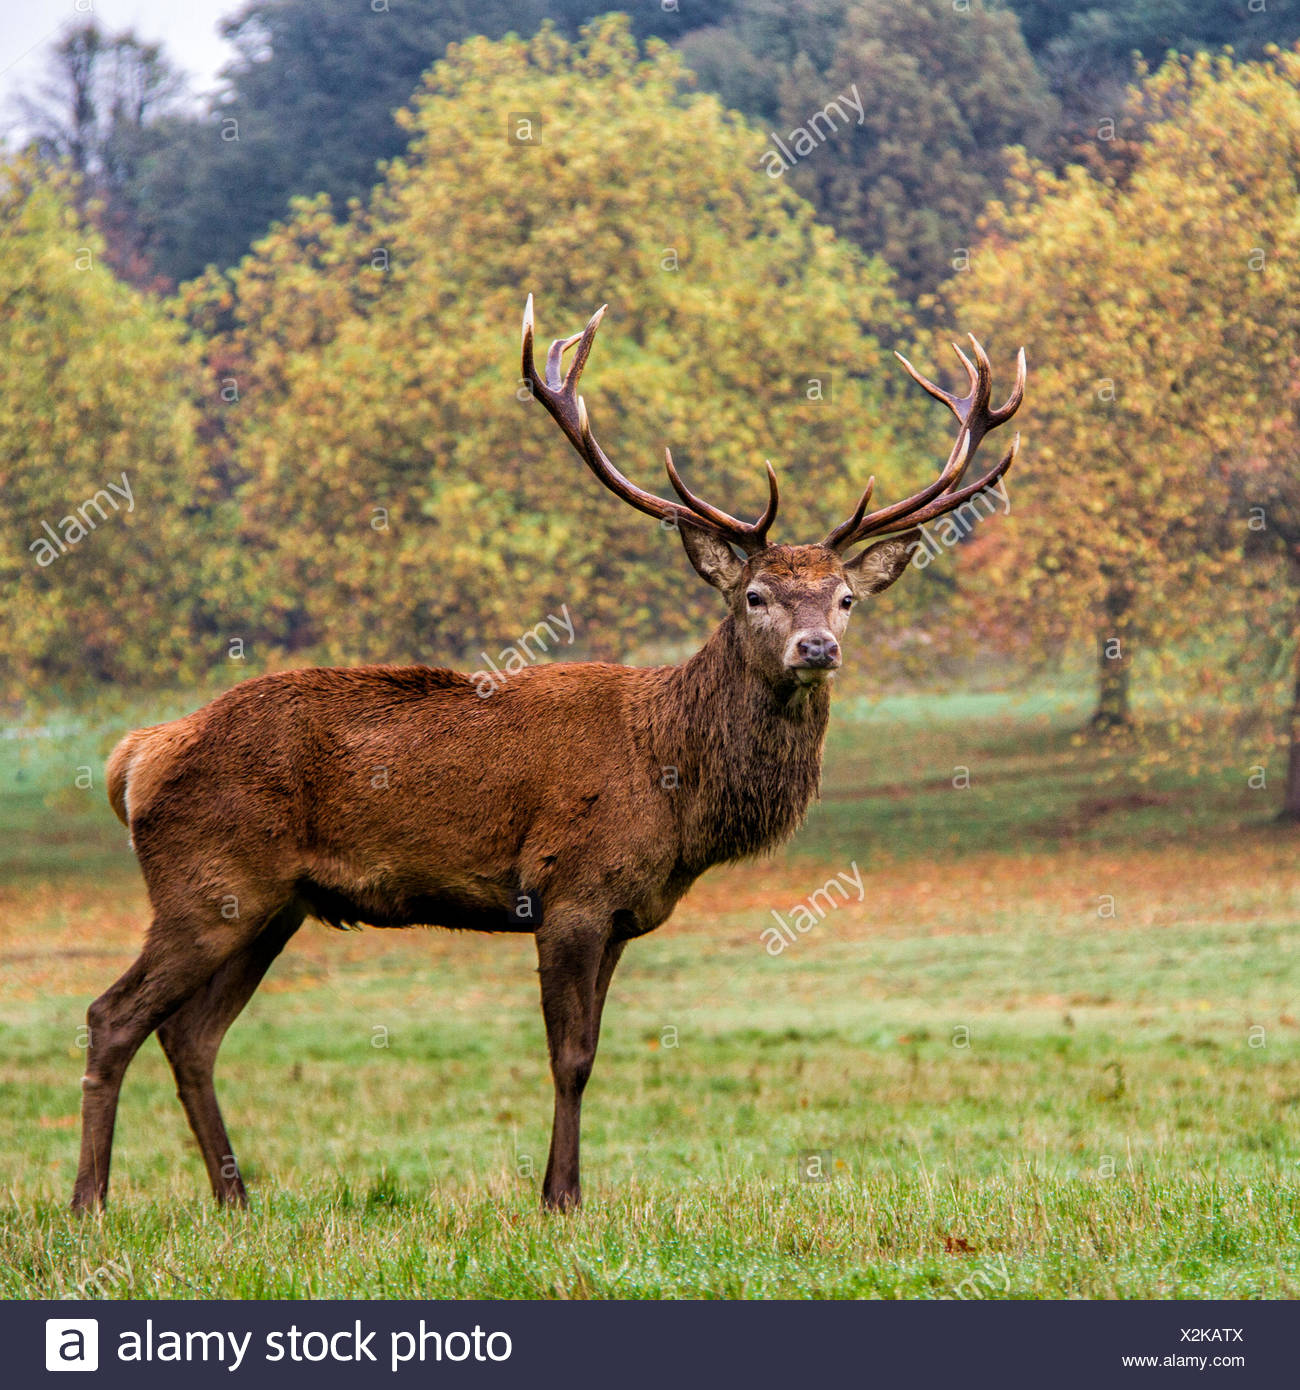 Portrait of stag in a park, England, UK - Stock Image